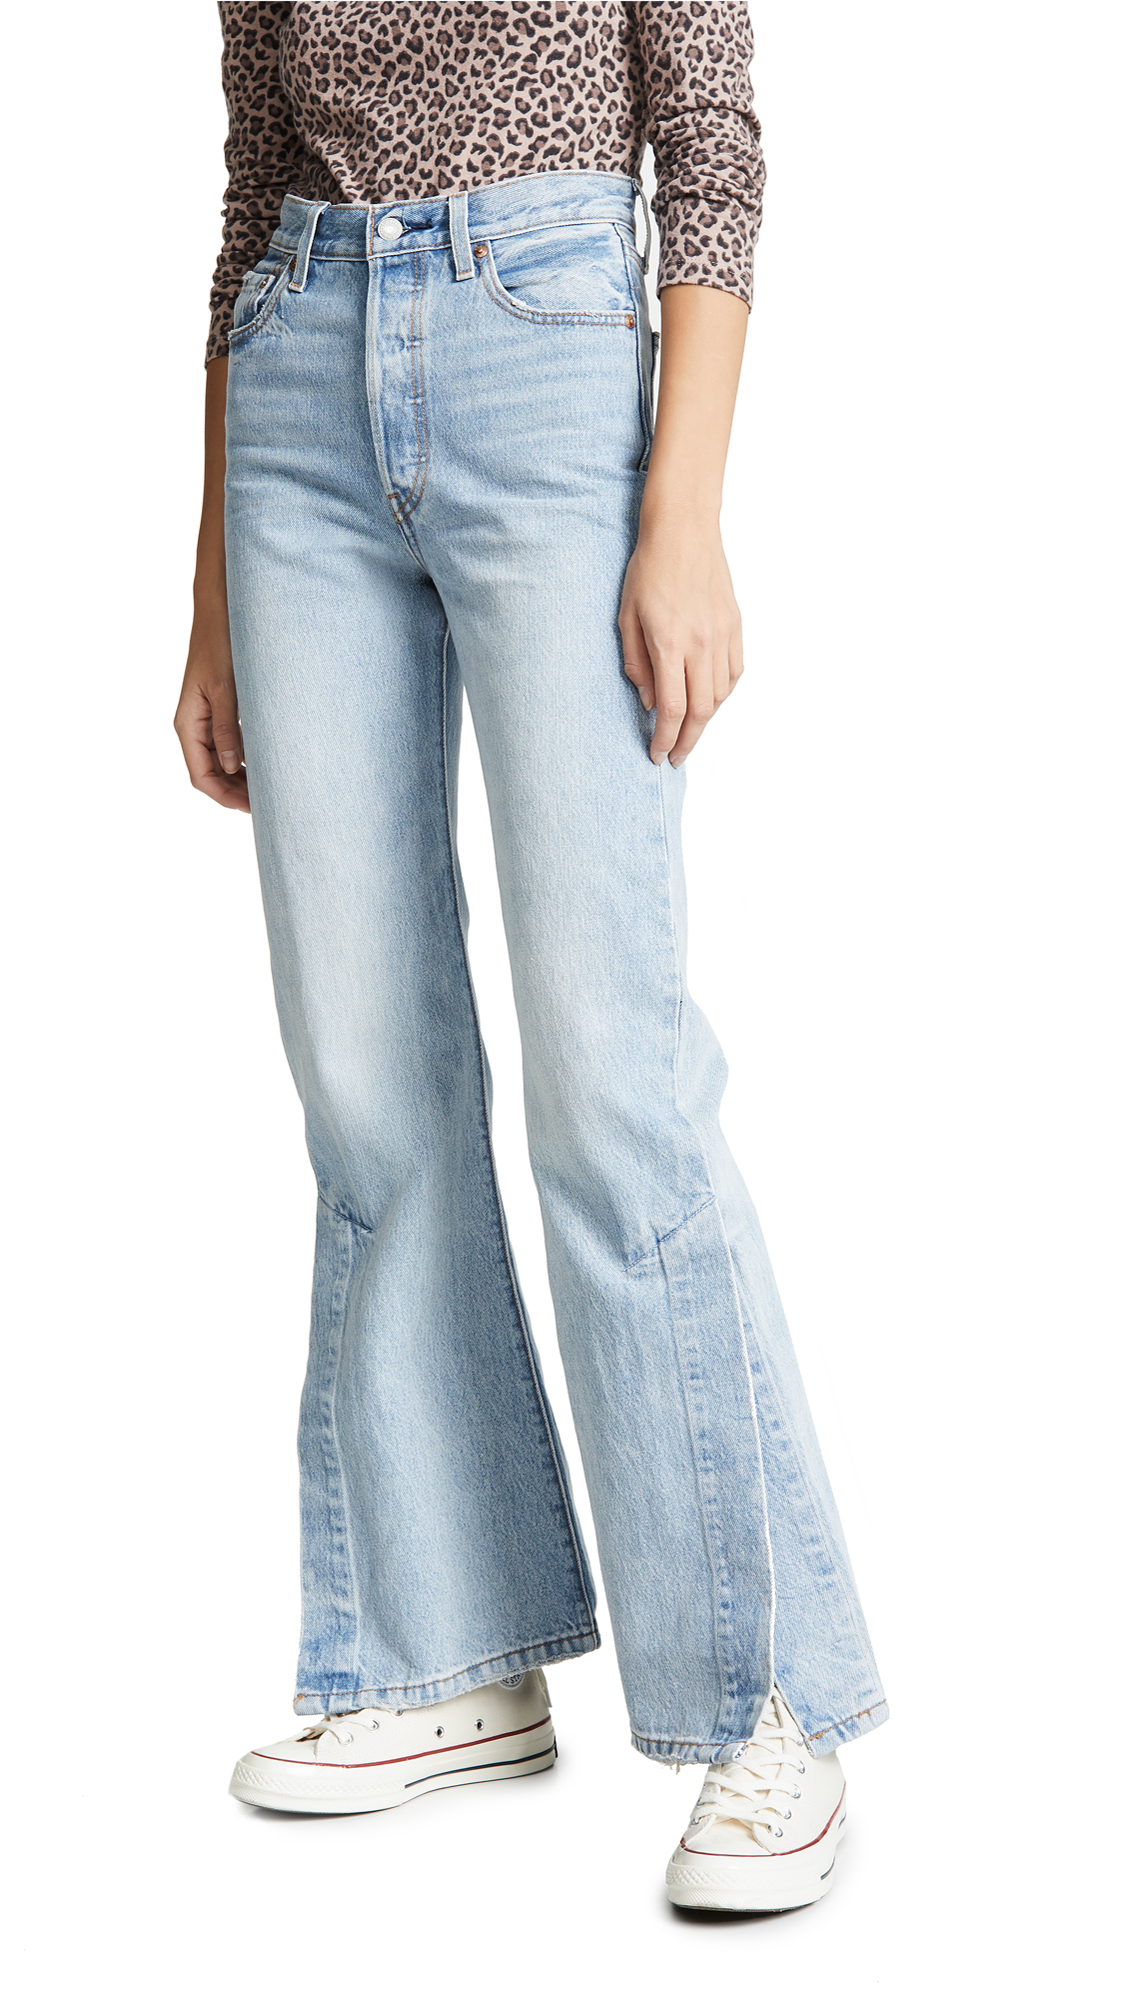 Levis Ribcage Split Flare Jeans - Dazed And Confused